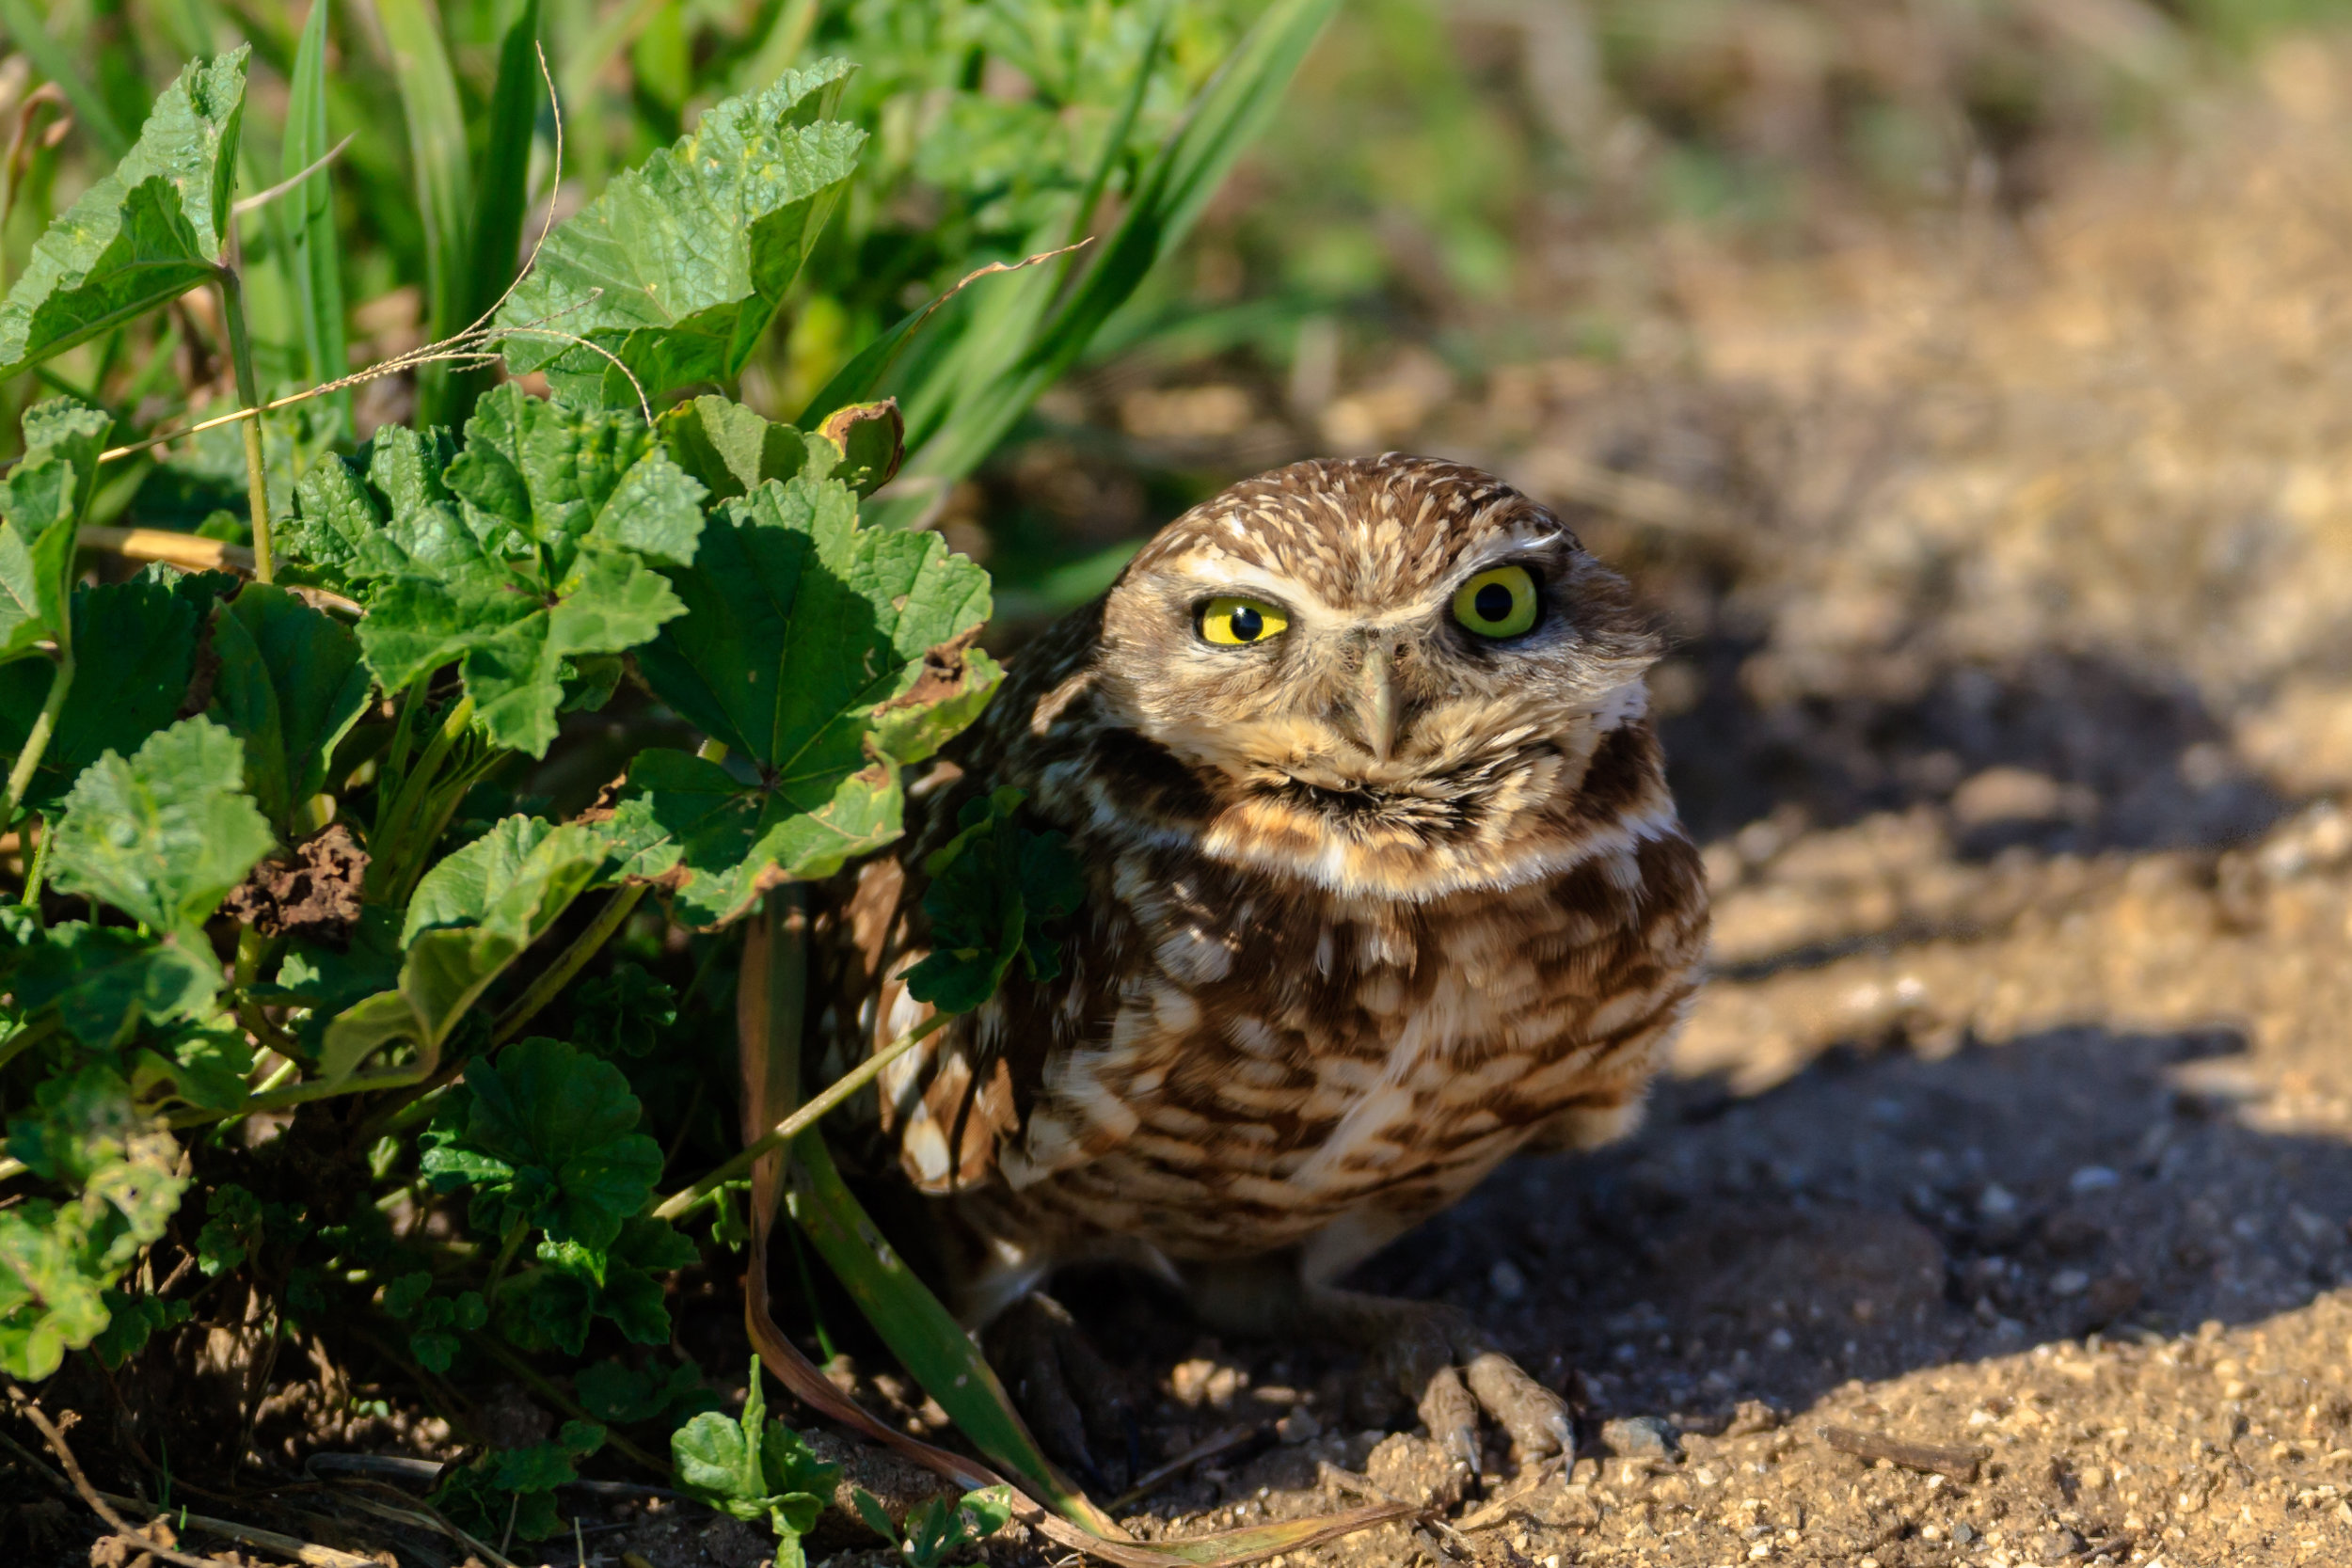 Species: Burrowing Owl Photo Credit: Damian Martinez Date: January 2018 Location: Mechler Rd., Bexar County